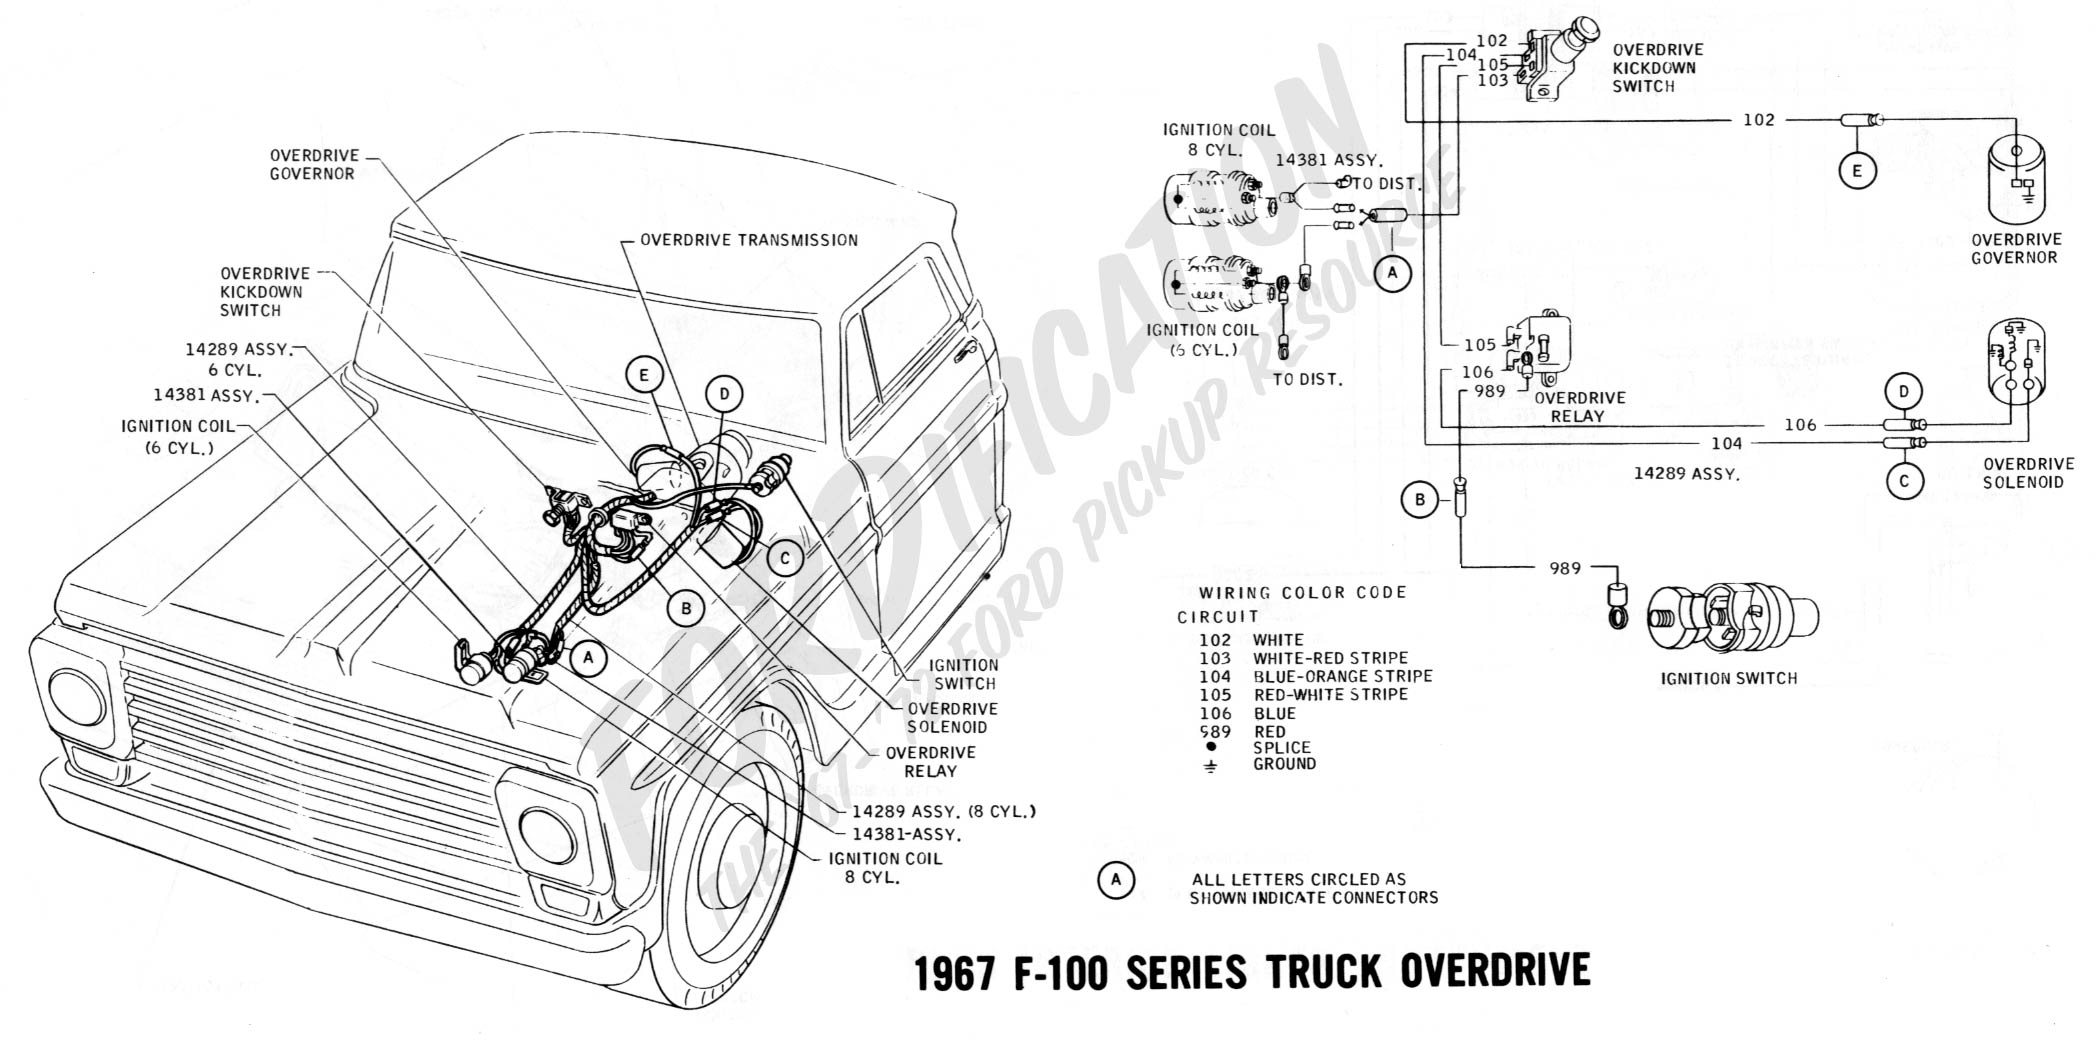 wiring 1967overdrive2 coil wiring diagram ford circuit and schematics diagram ford ignition coil wiring diagram at soozxer.org